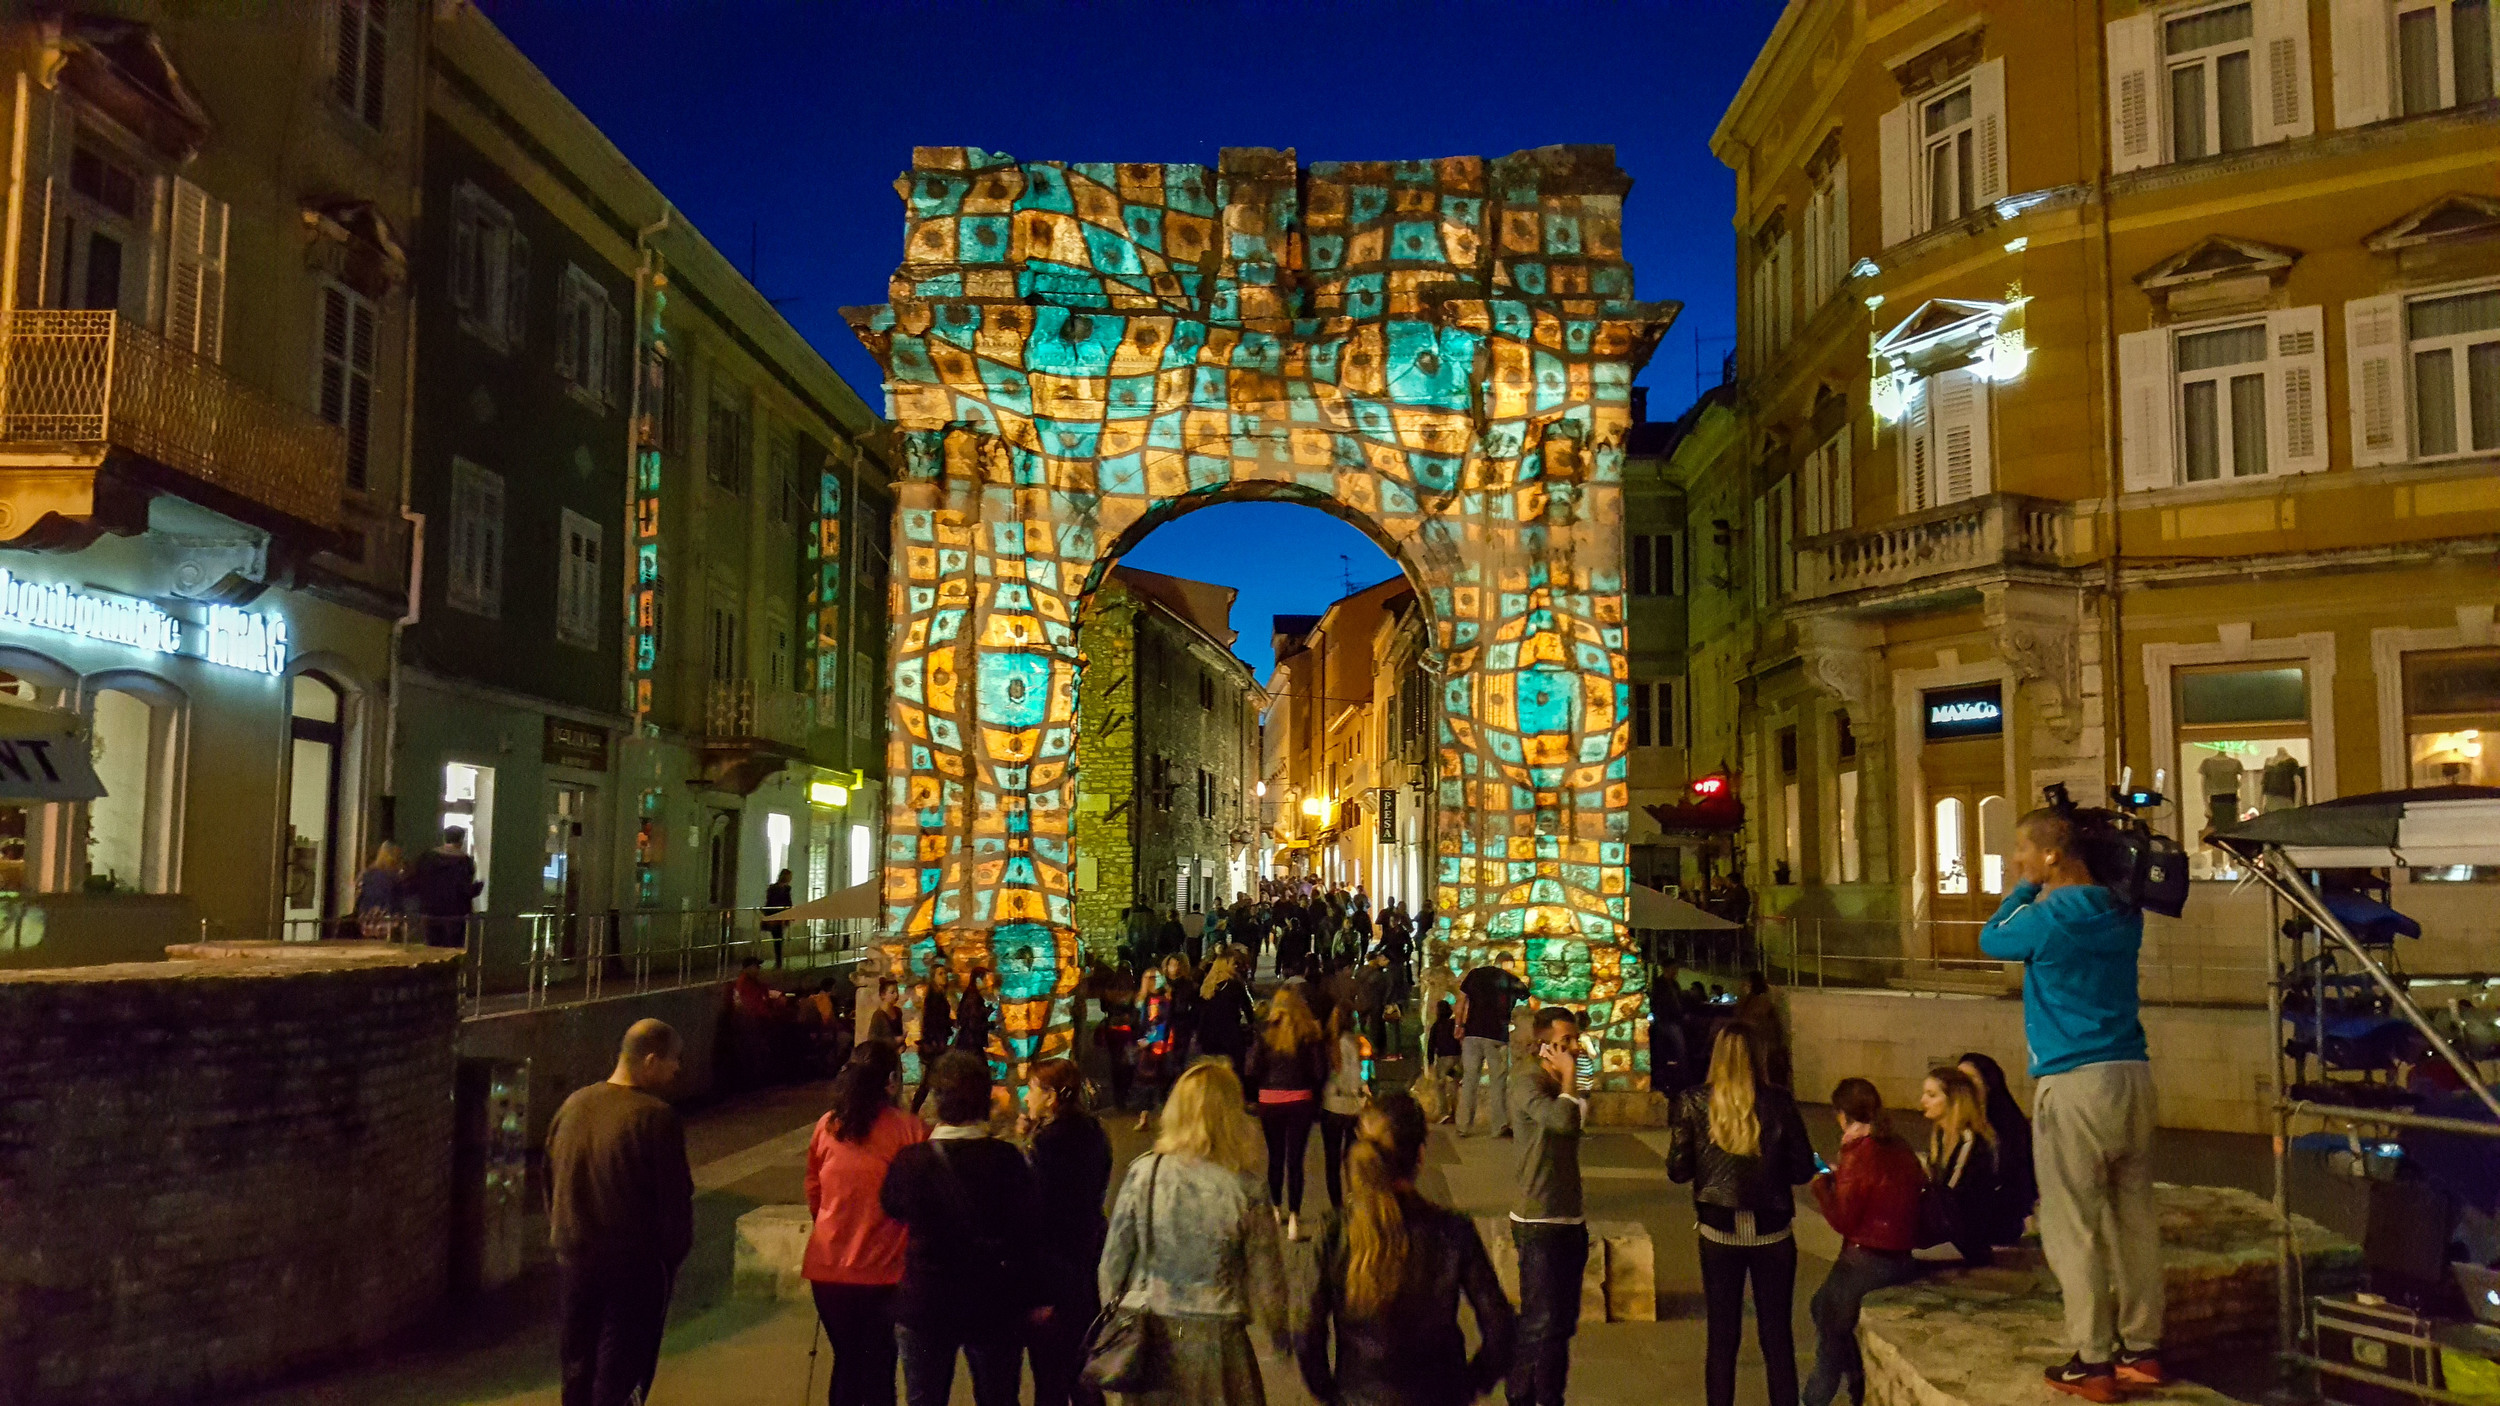 Golden Gate in Pula during Visualia Festival